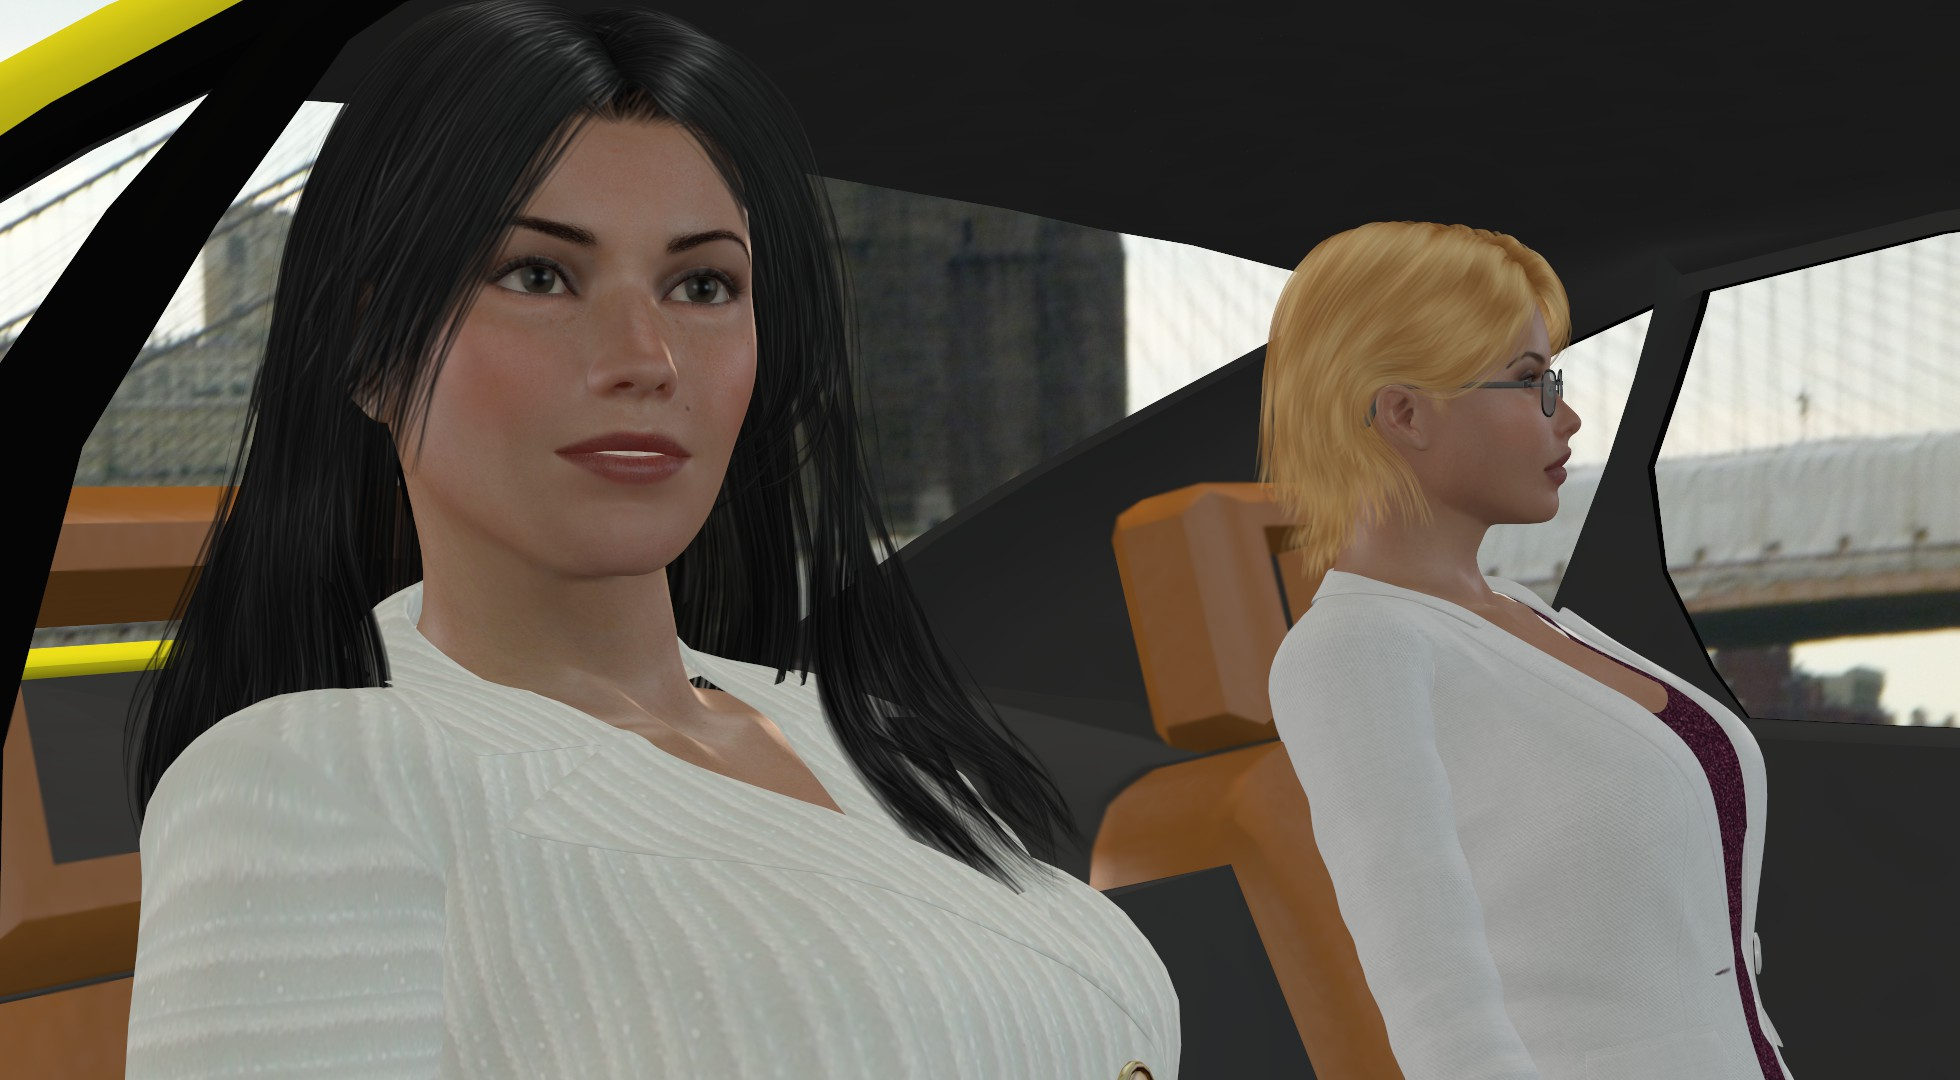 Rachel And Ariane - Arianes Life in the Metaverse